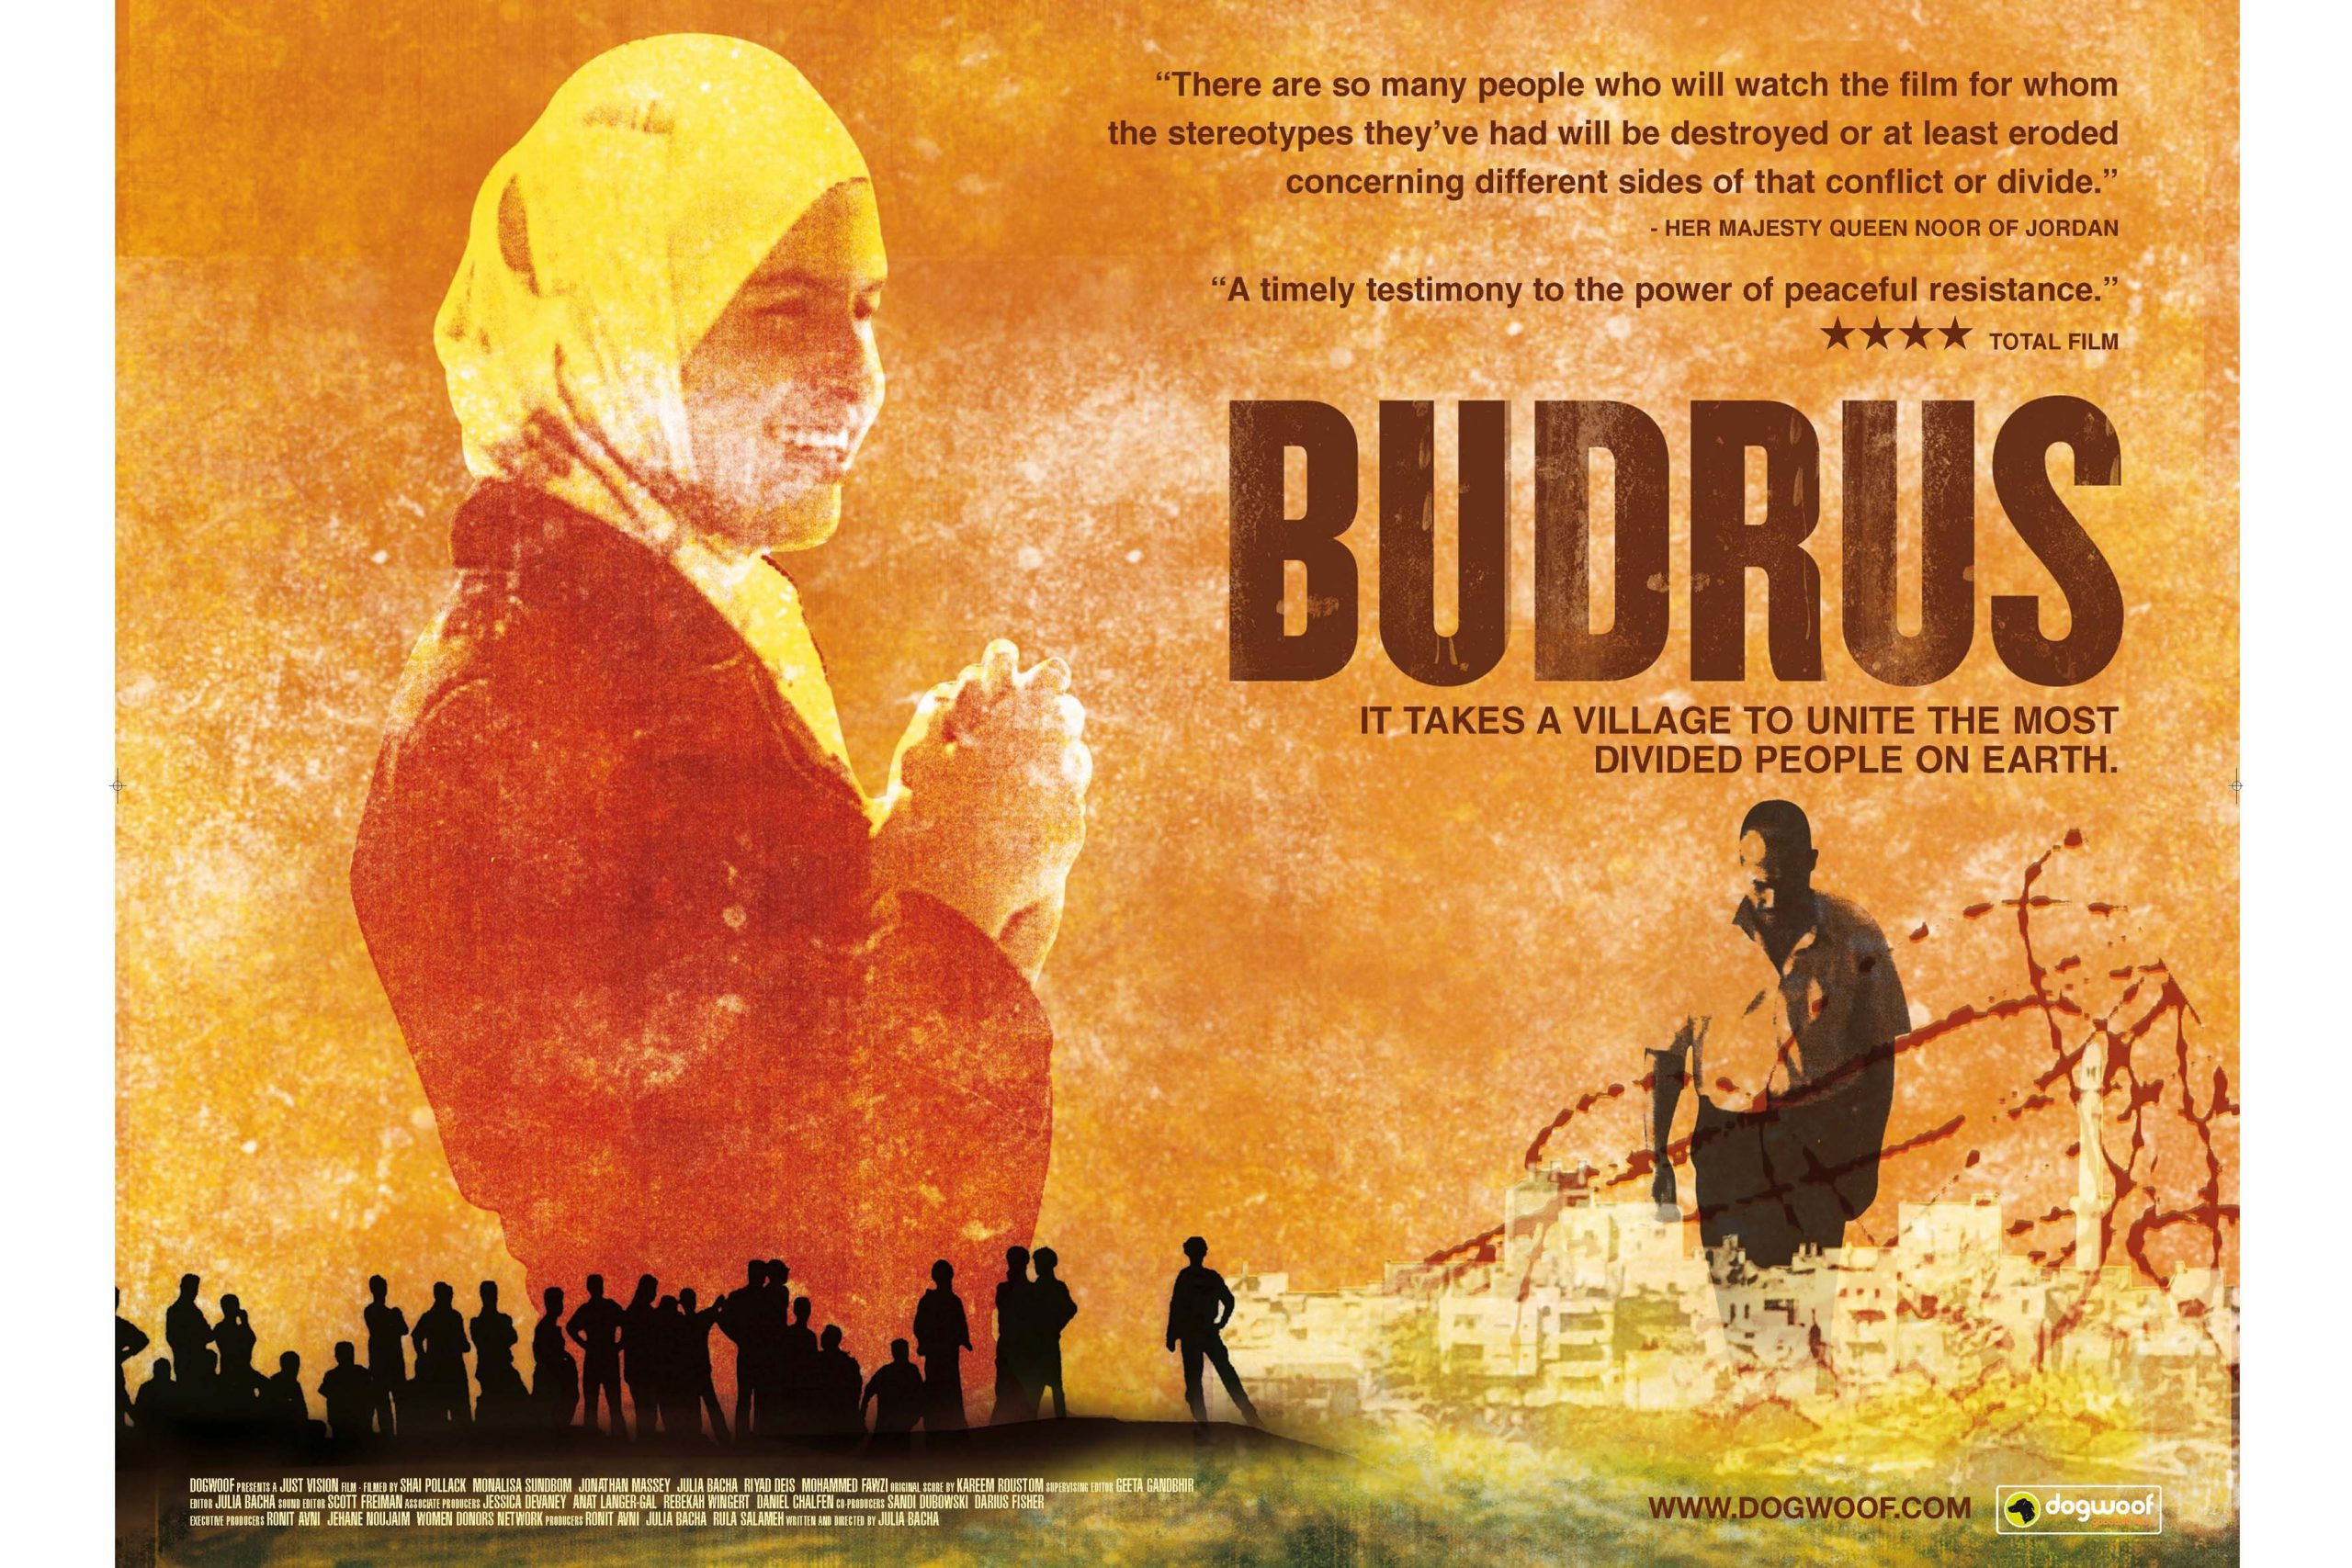 Undated: The award-winning movie Budrus features Iltizam Morrar. (Photograph supplied)